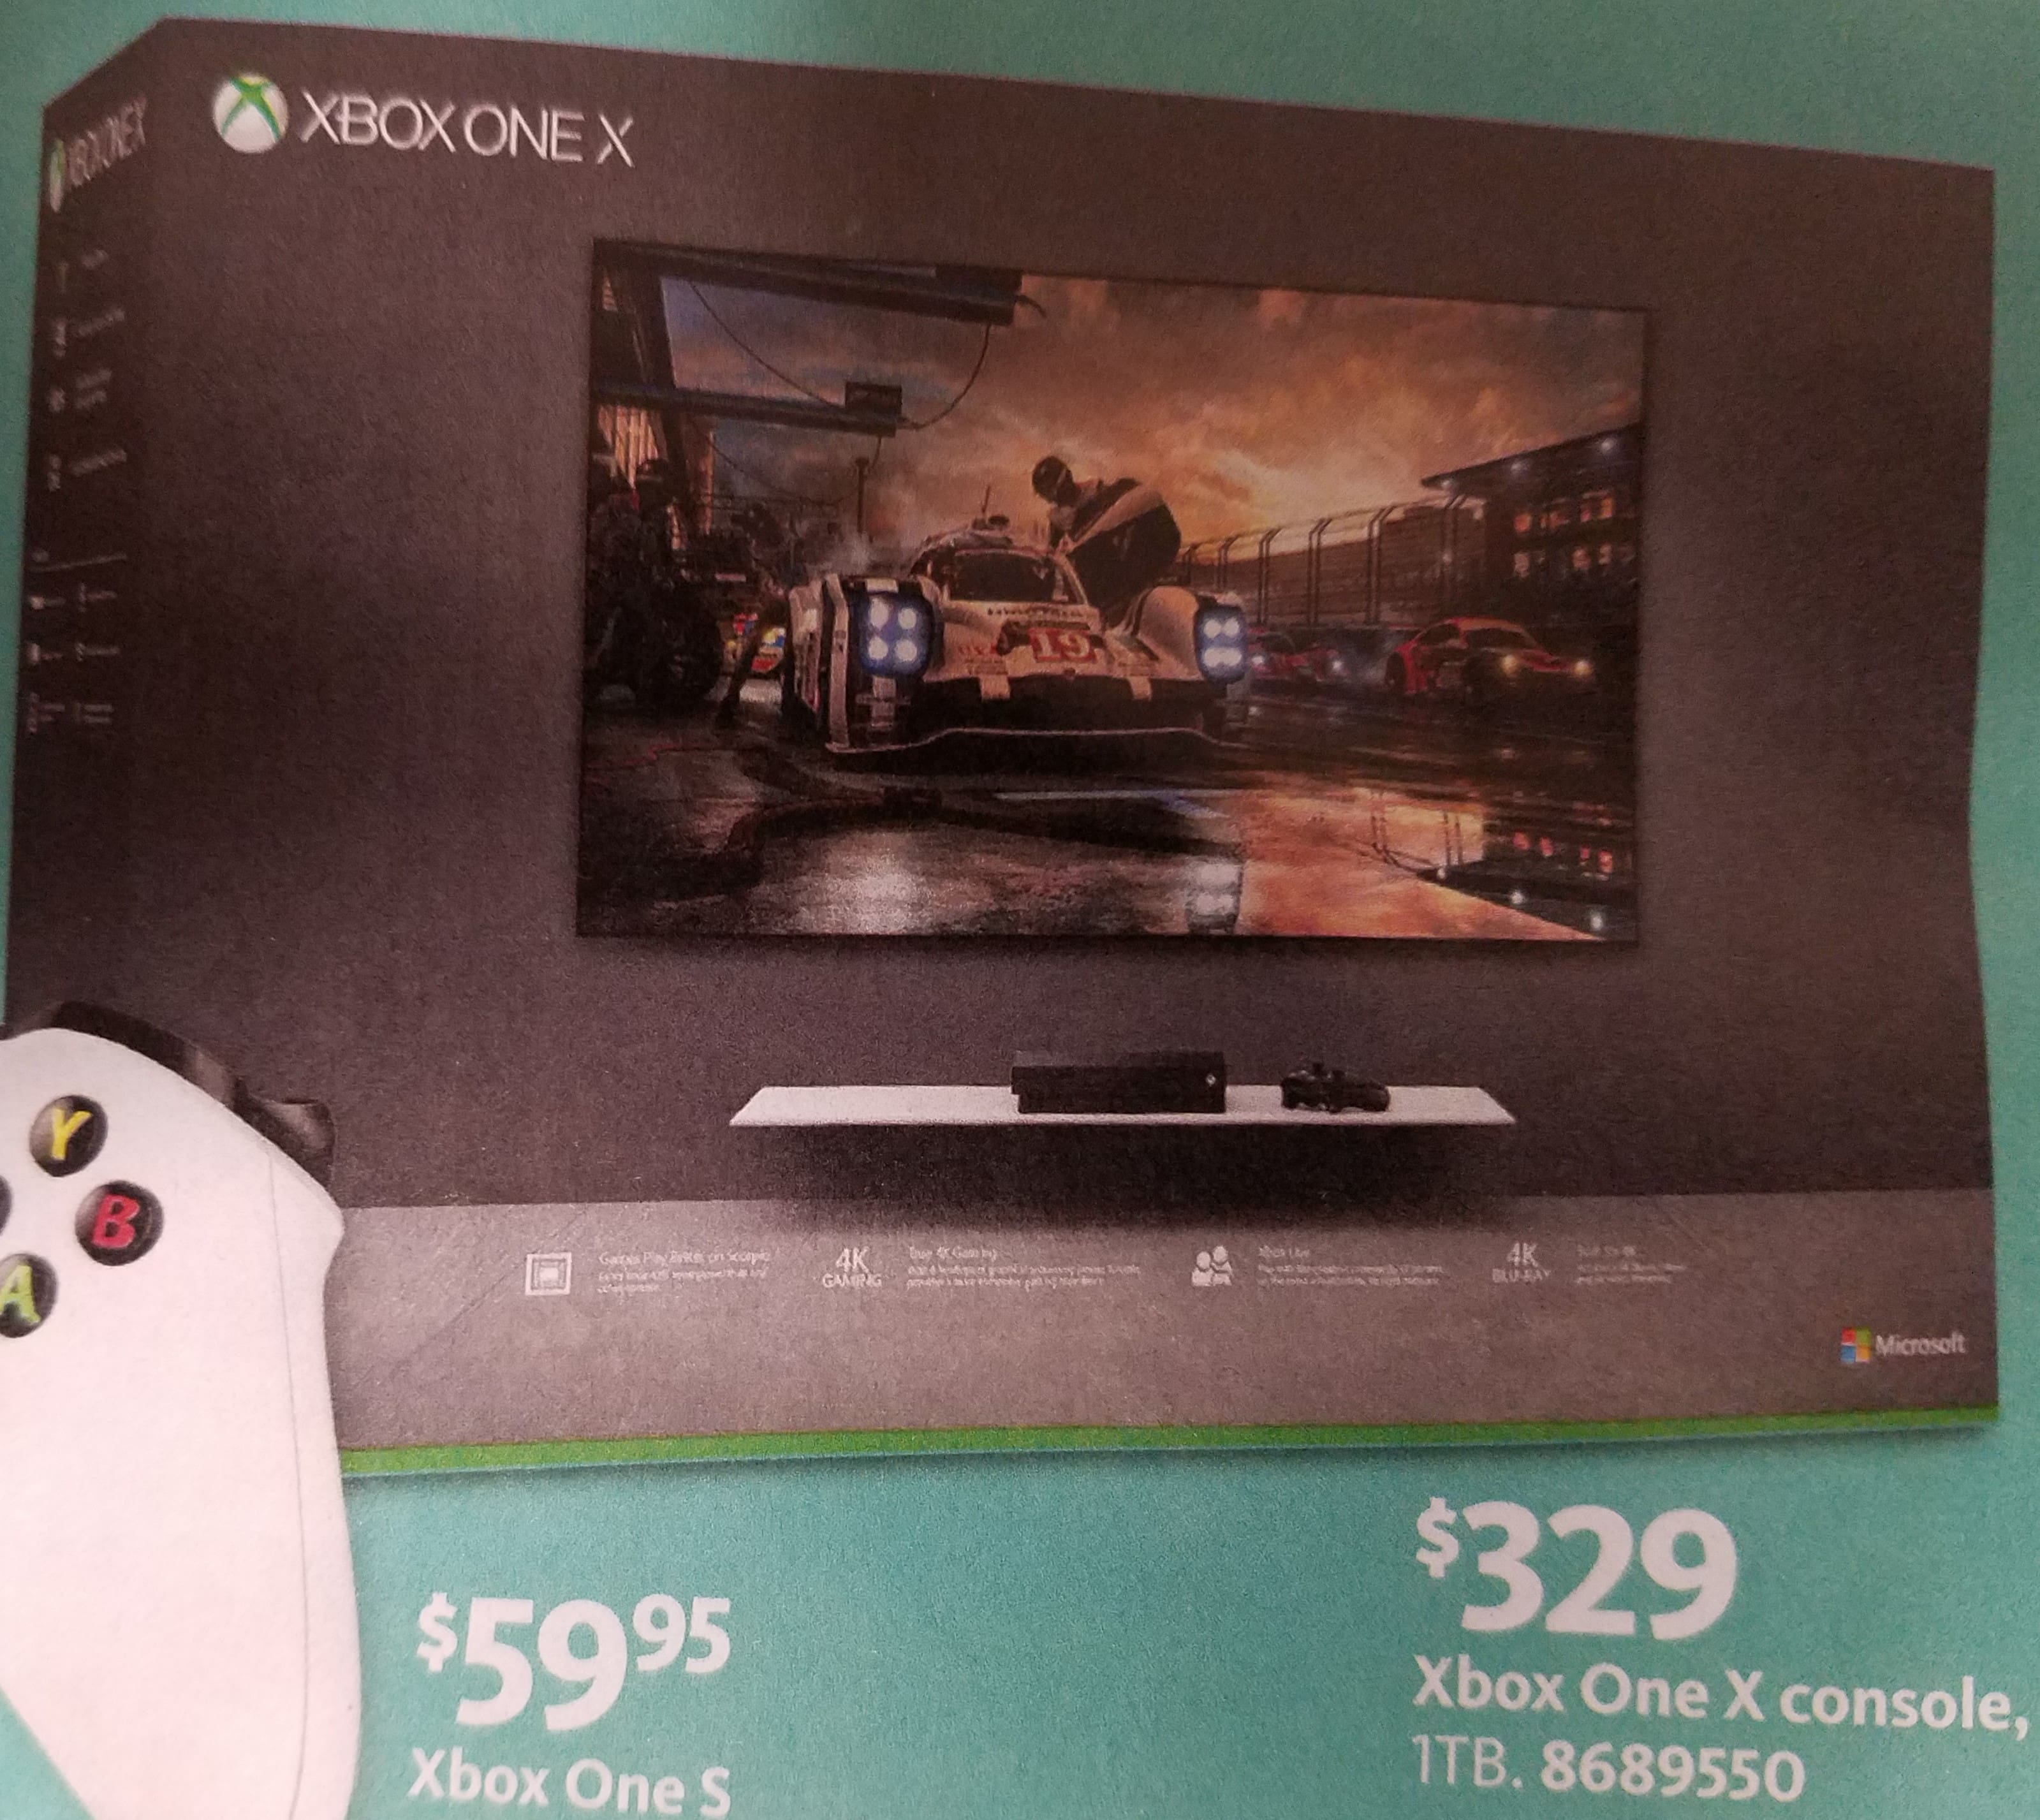 AAFES has updated Ad-No Deal(Jan 26- 1 Feb)AAFES Xbox One X 1TB Console